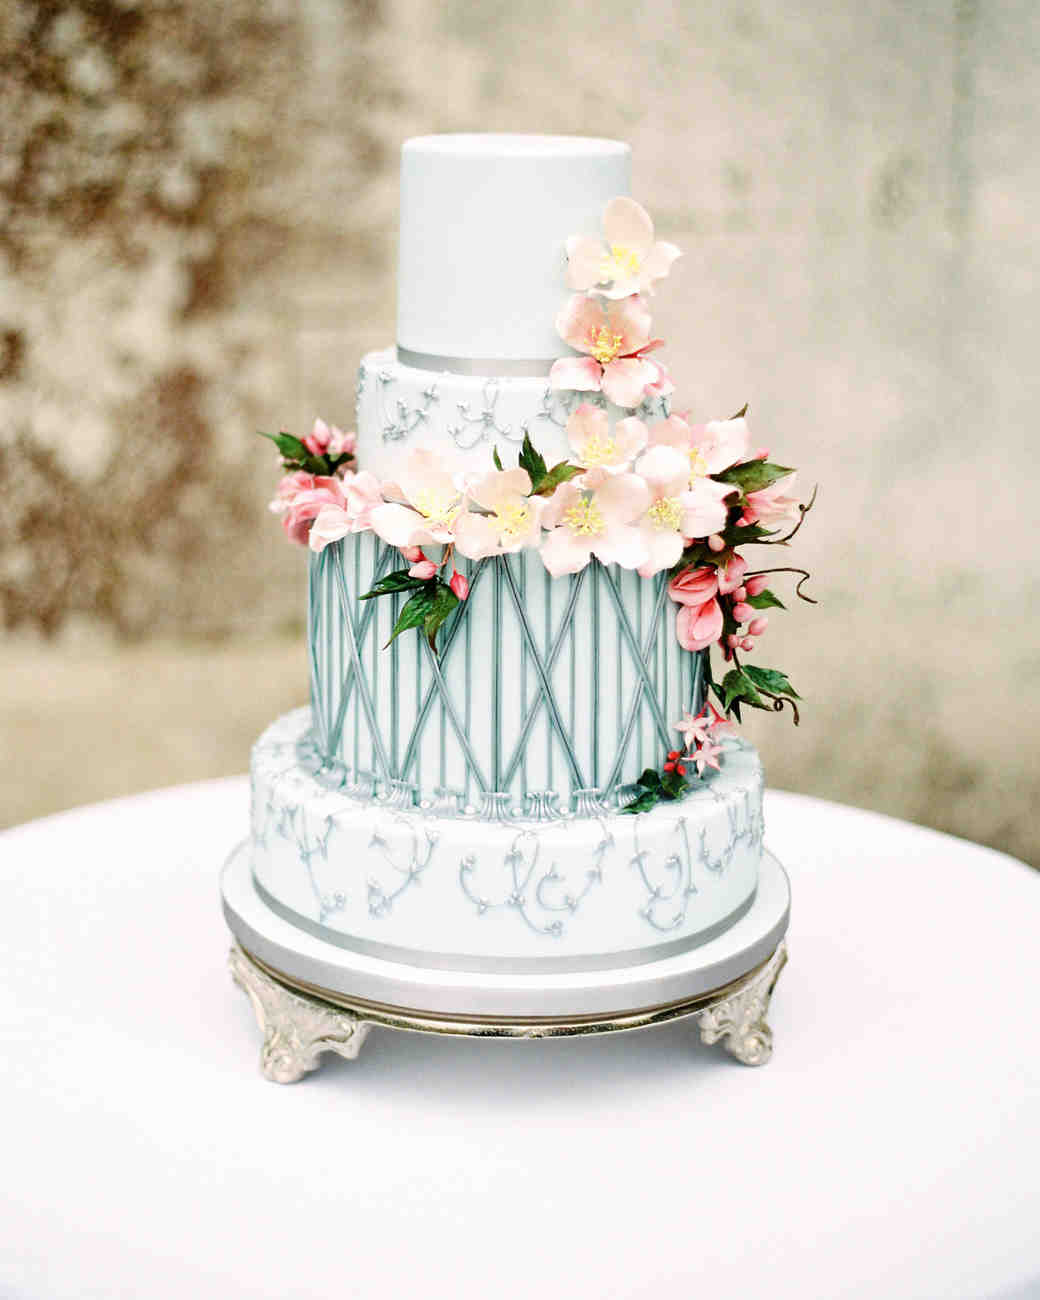 25 Wedding Cake Design Ideas That ll Wow Your Guests   Martha     25 Wedding Cake Design Ideas That ll Wow Your Guests   Martha Stewart  Weddings